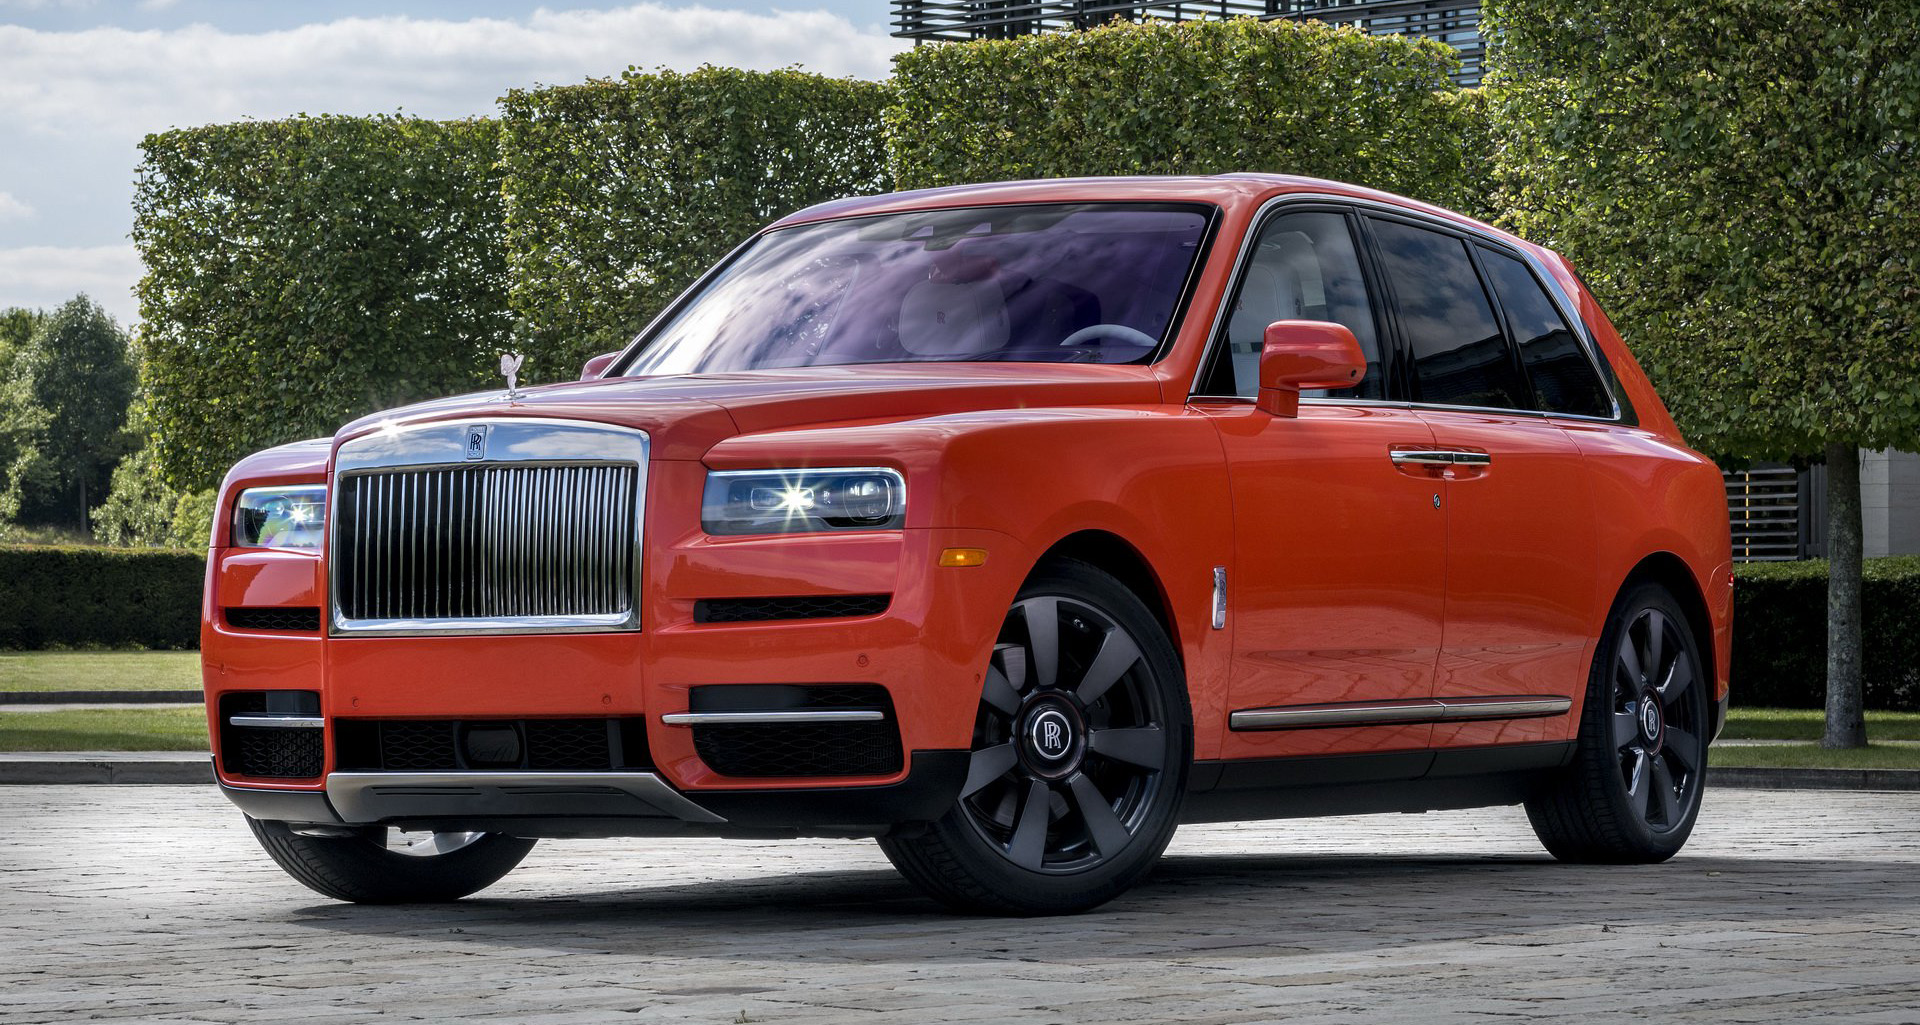 a7439cd8-rolls-royce-cullinan-fux-orange-15.jpg